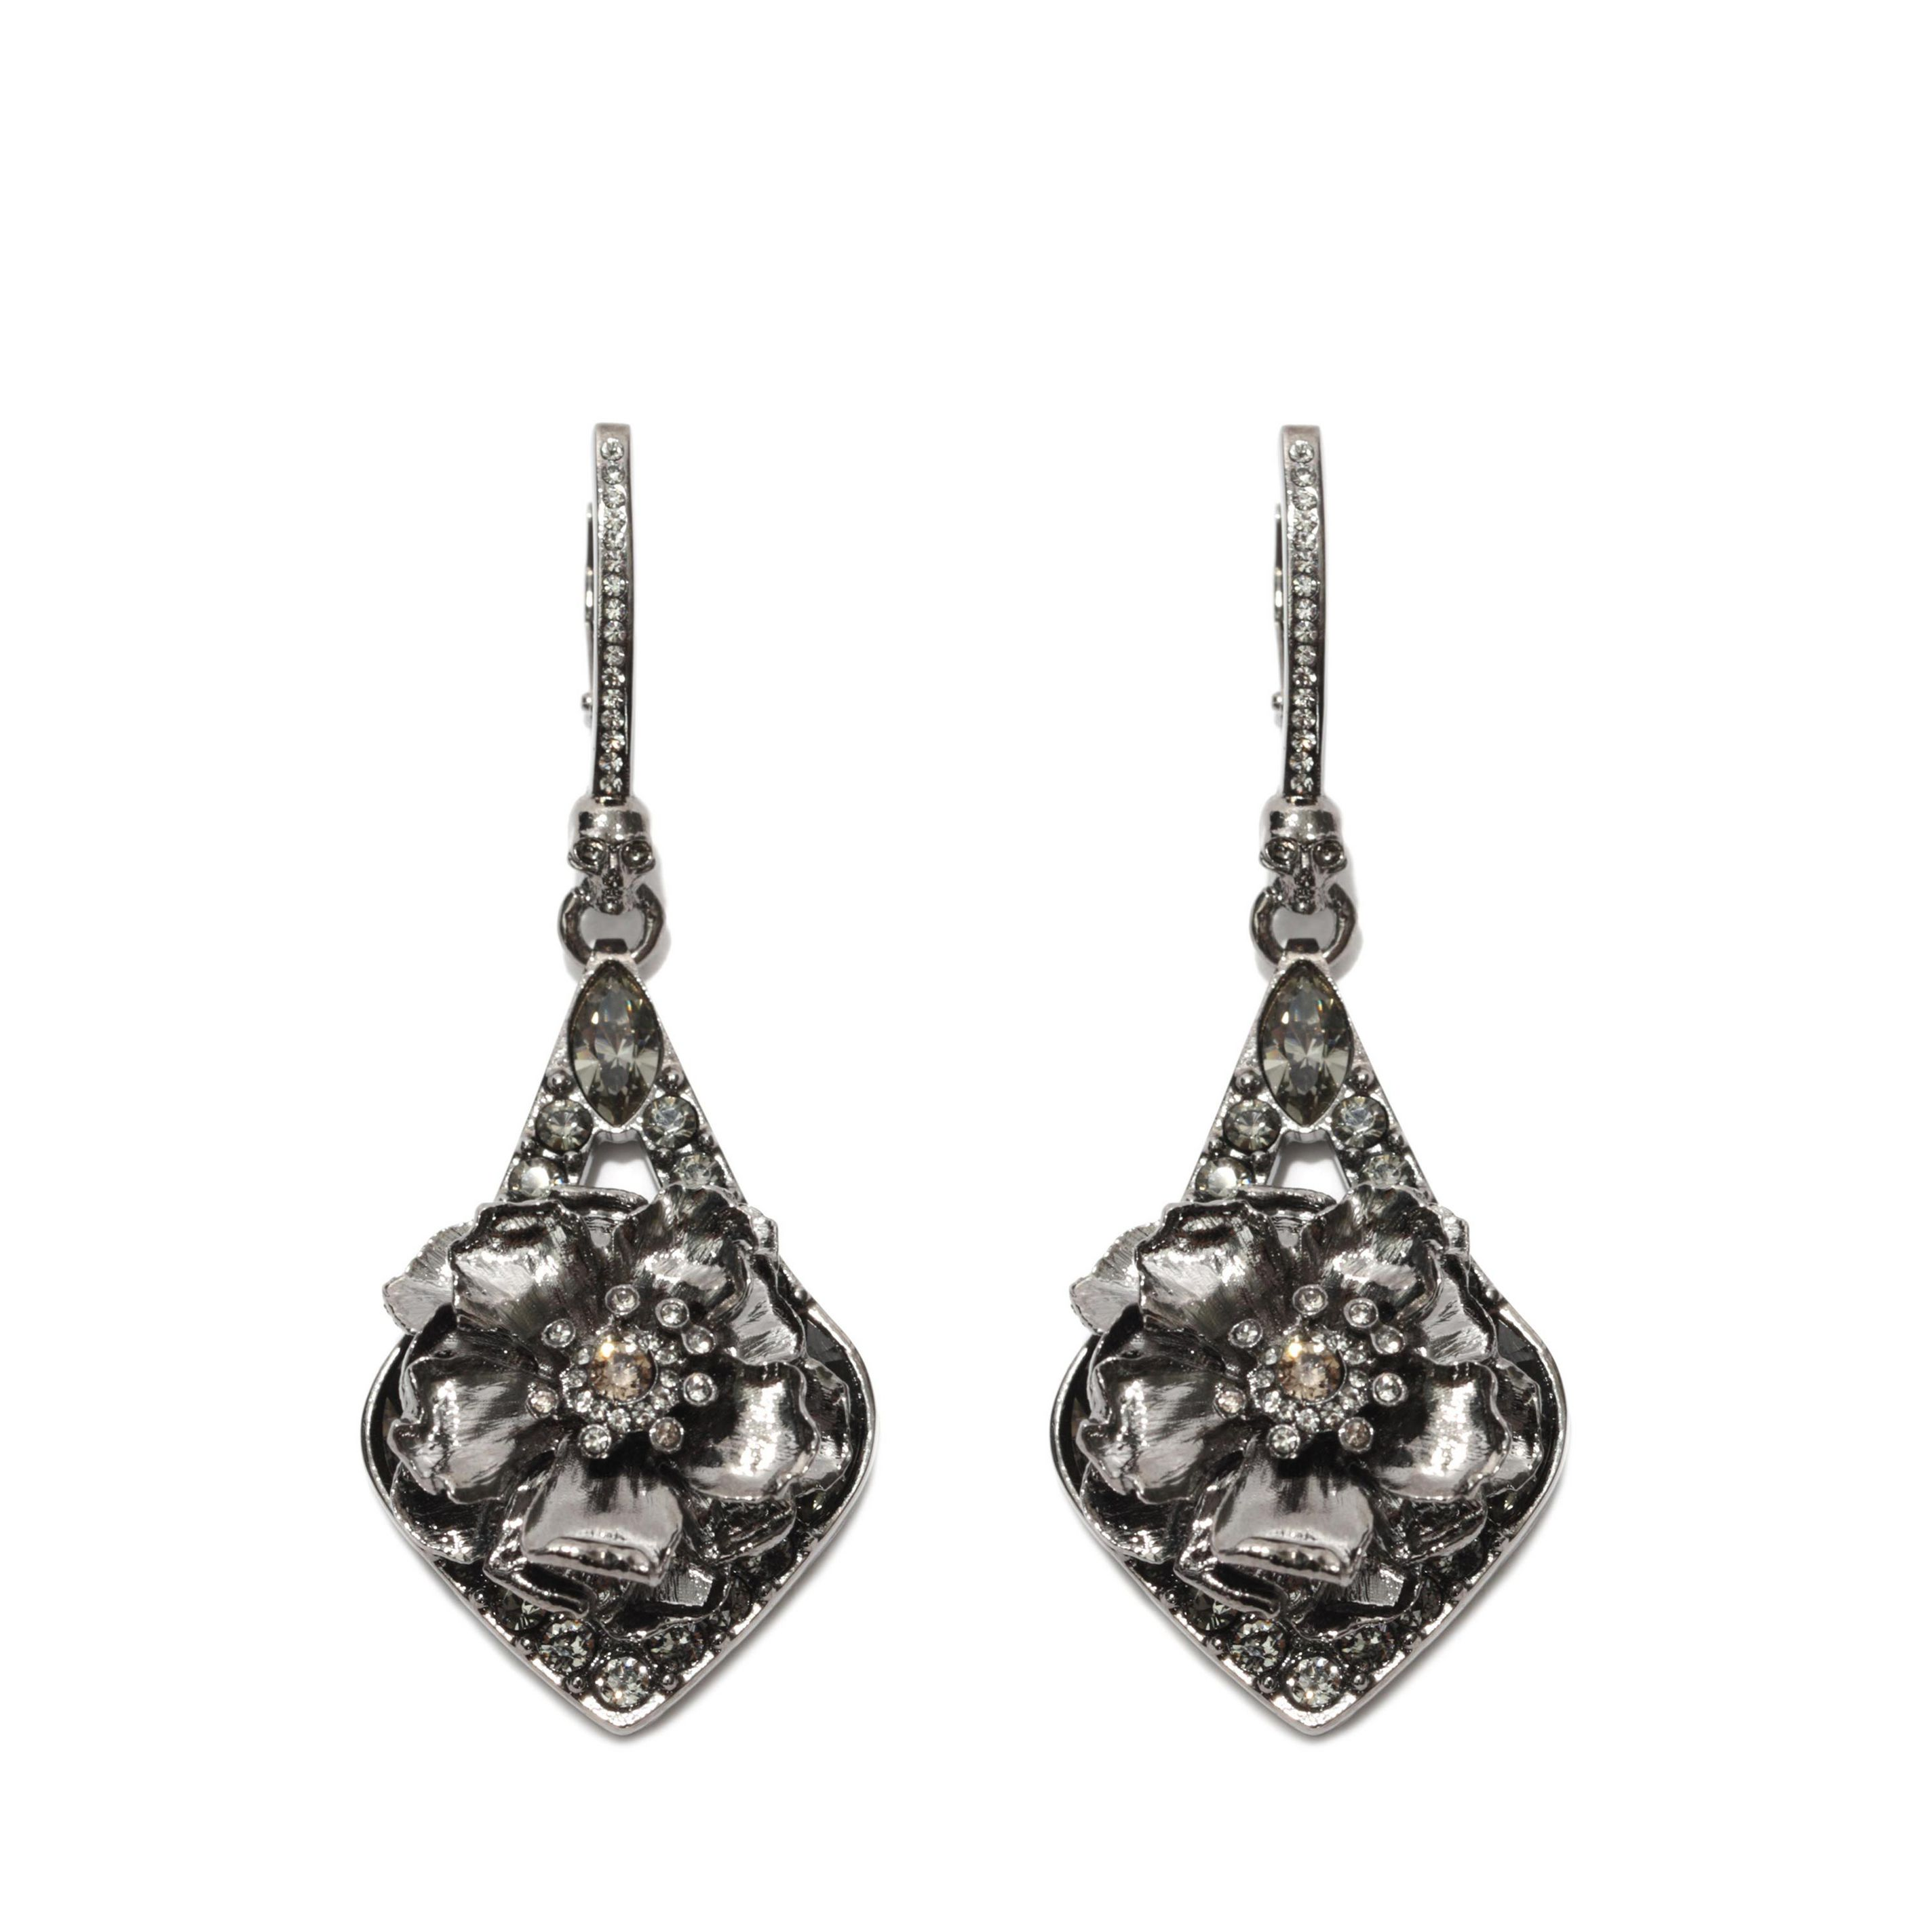 Jeweled Floral Earrings Alexander McQueen